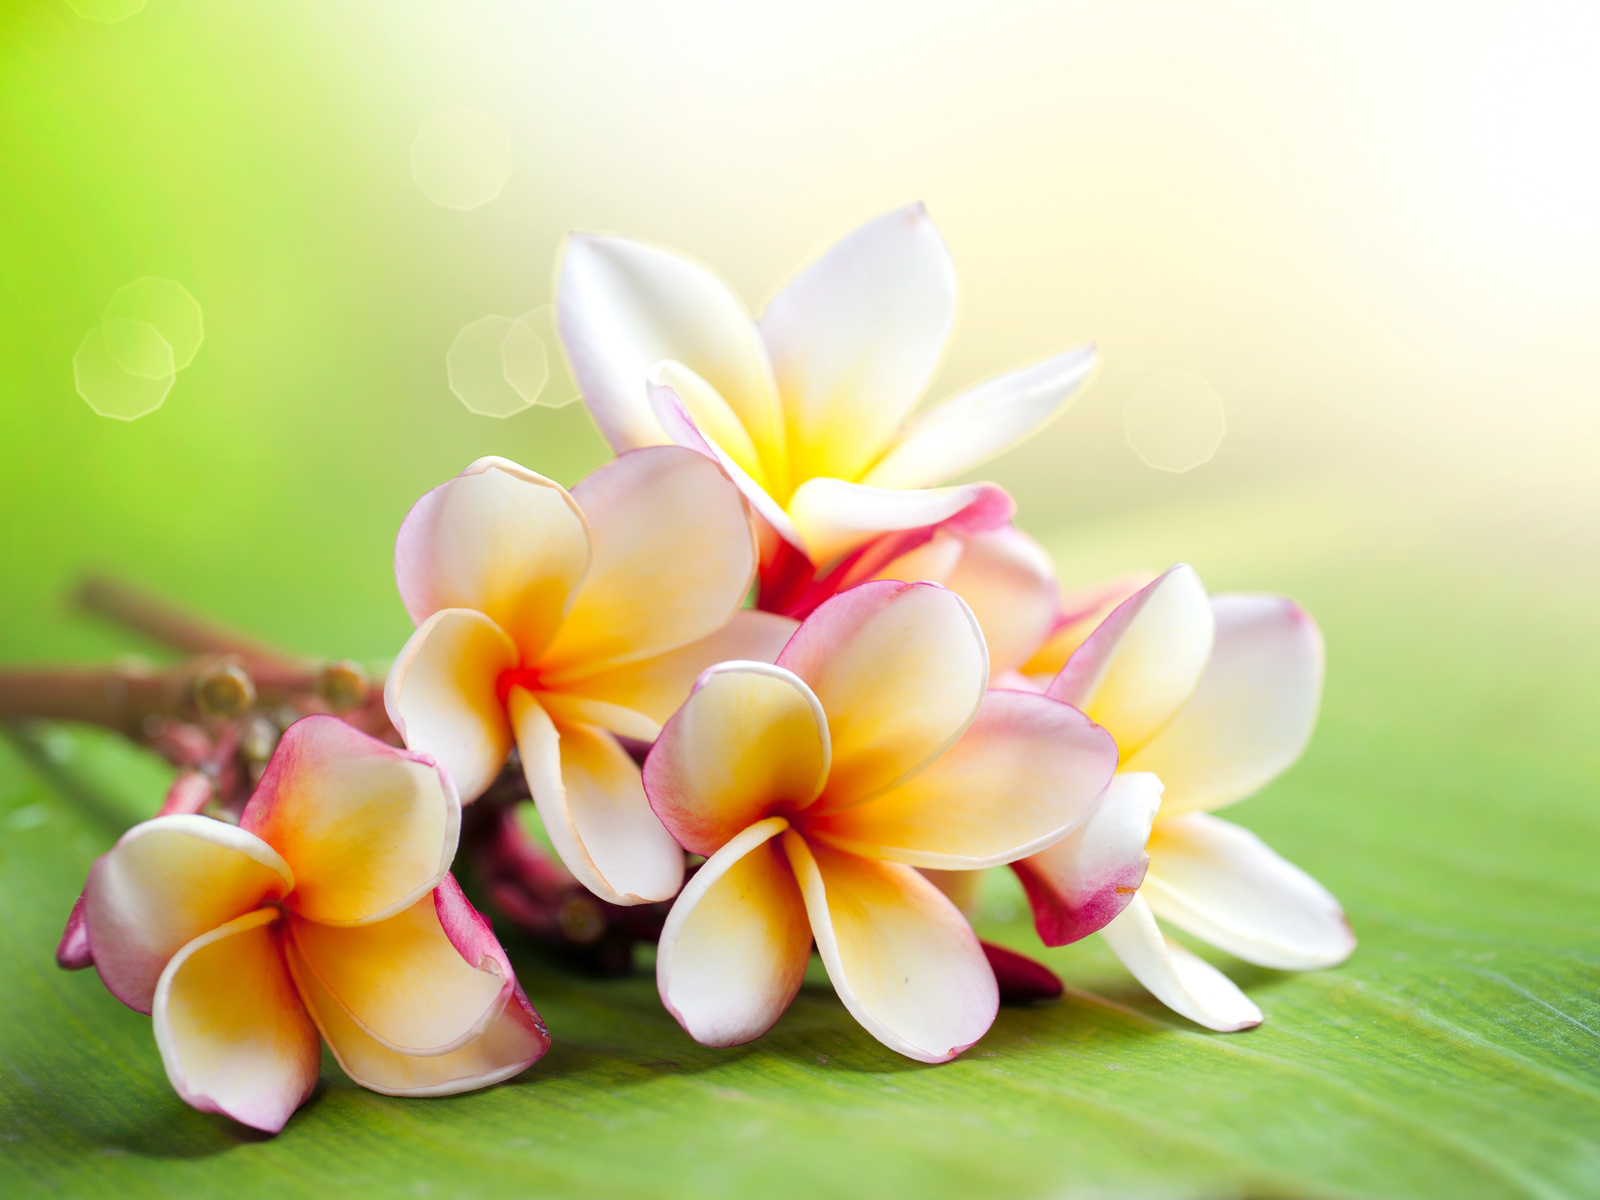 Hawaiian Flower Wallpaper 1600x1200